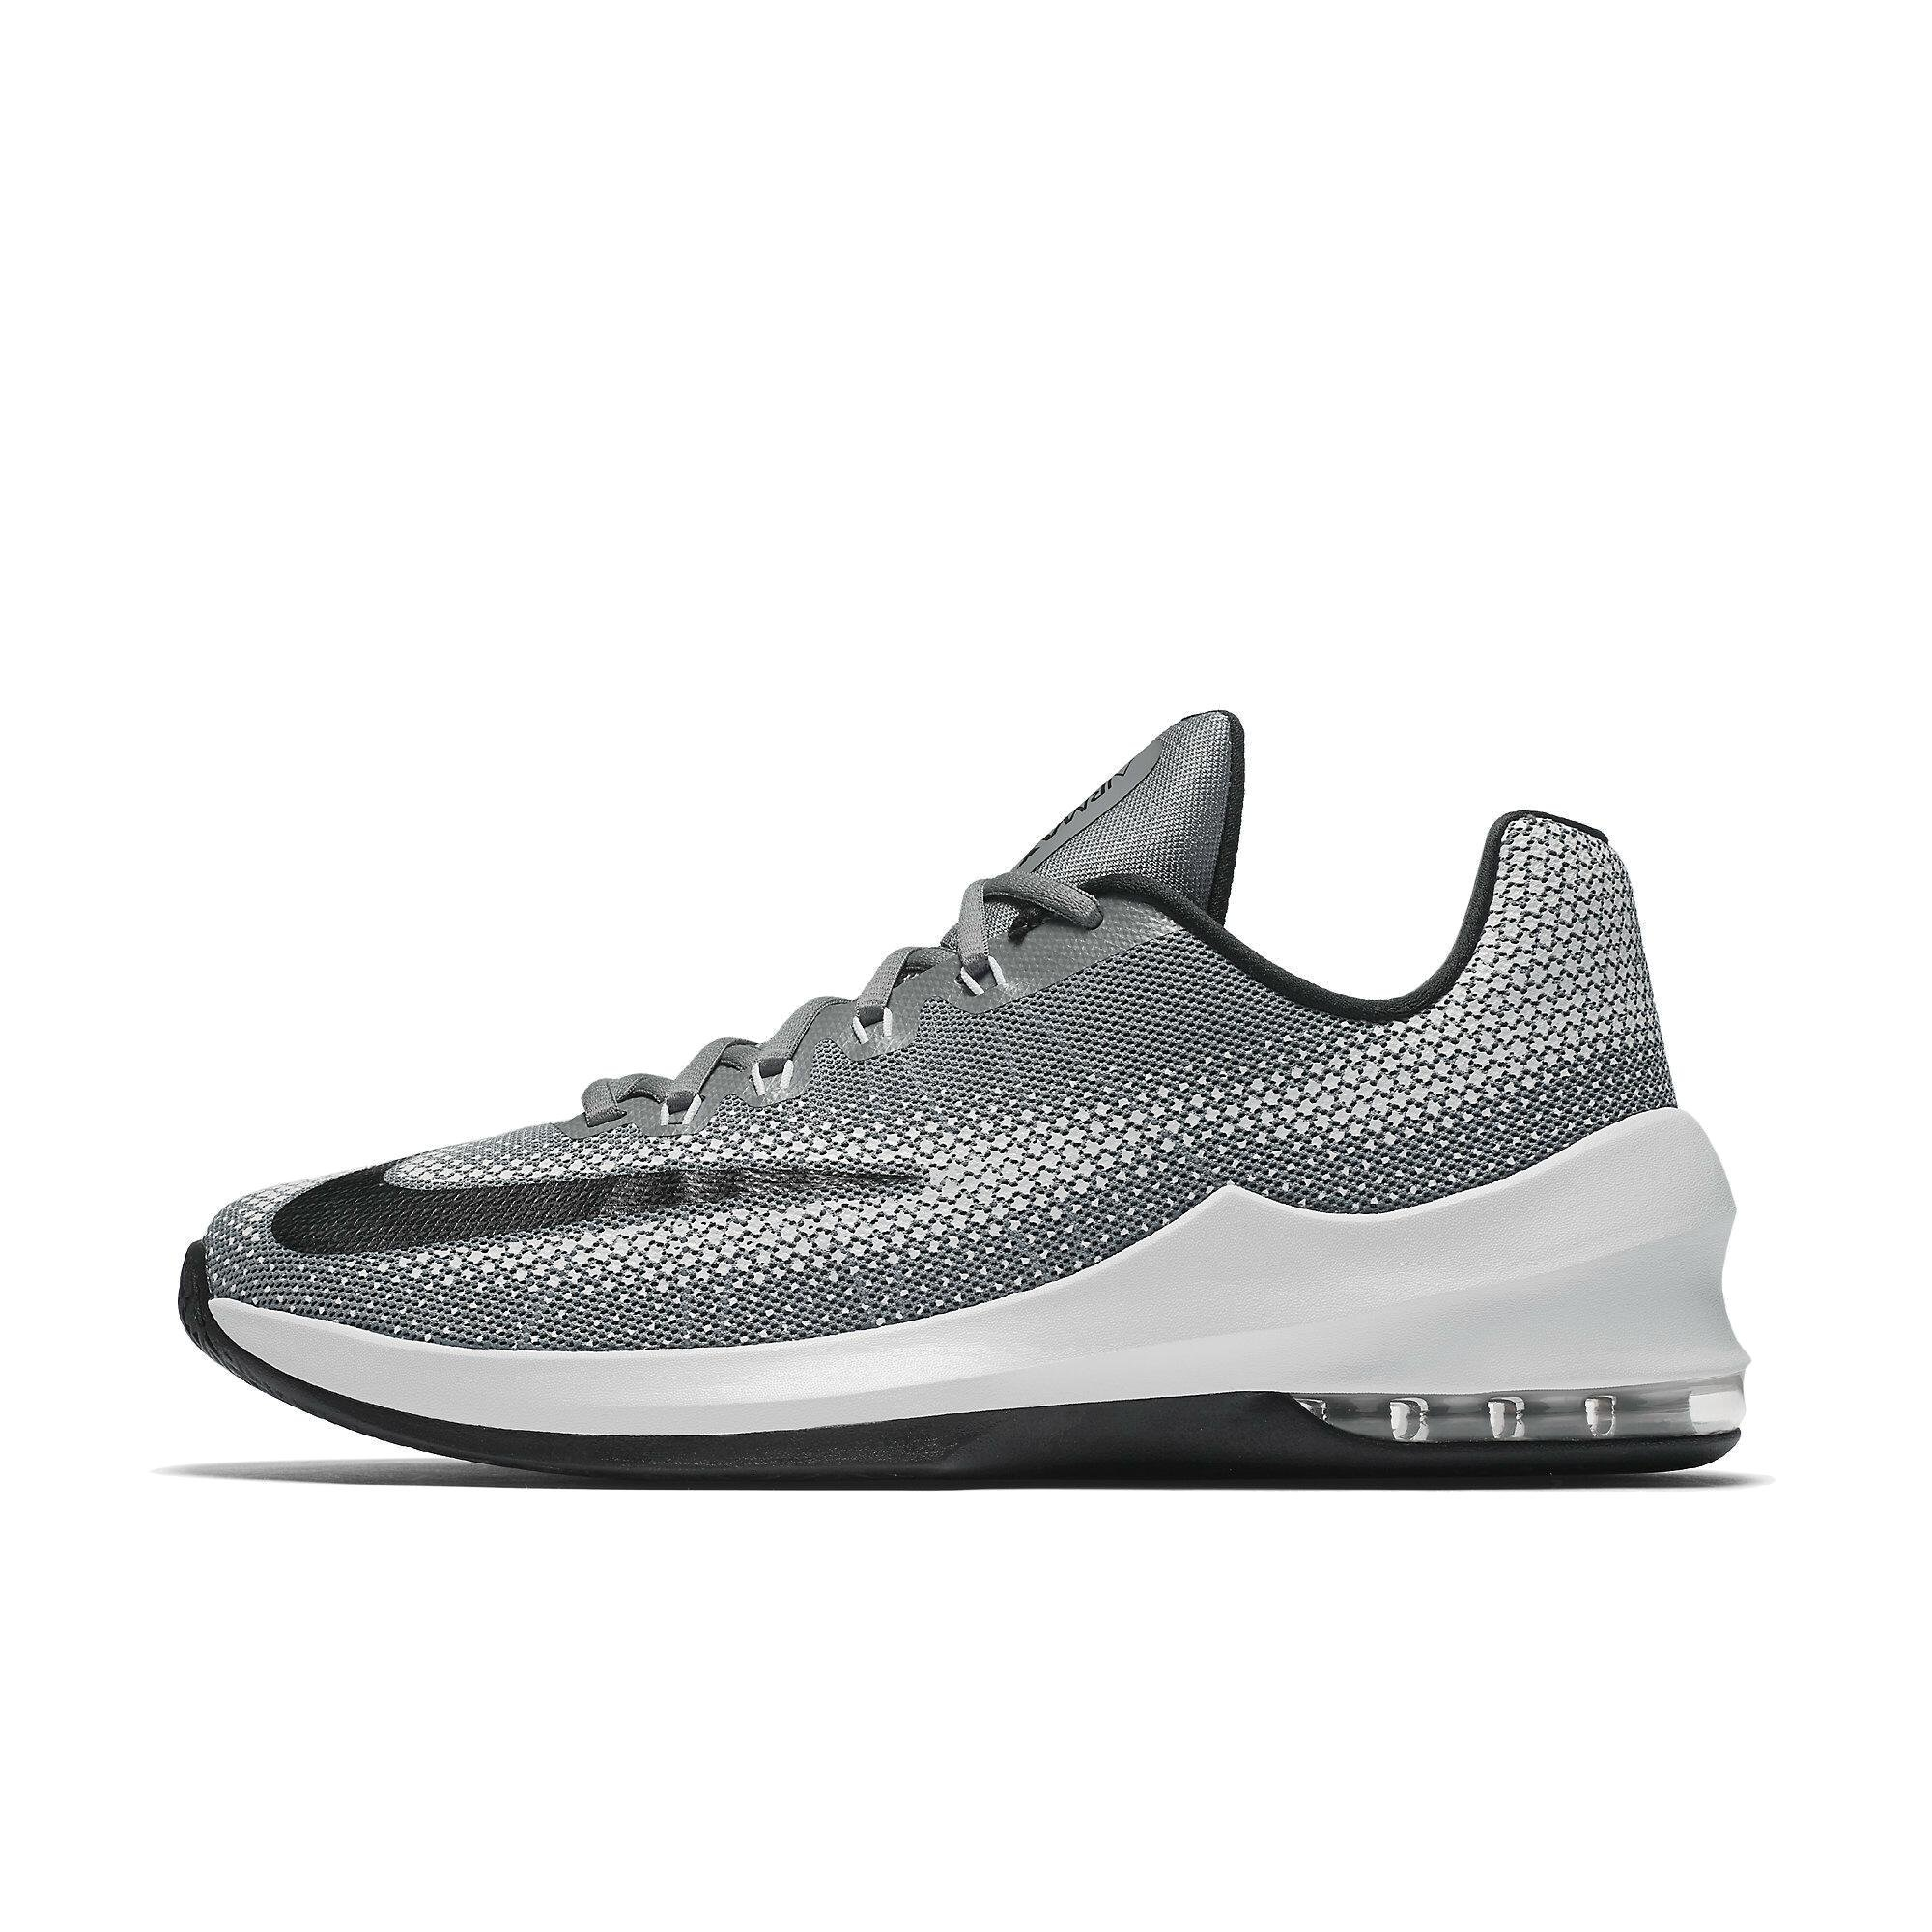 sports shoes 98edd b958d Galleon - Nike Mens Air Max Infuriate Low Basketball Shoes-Cool Gray-10.5